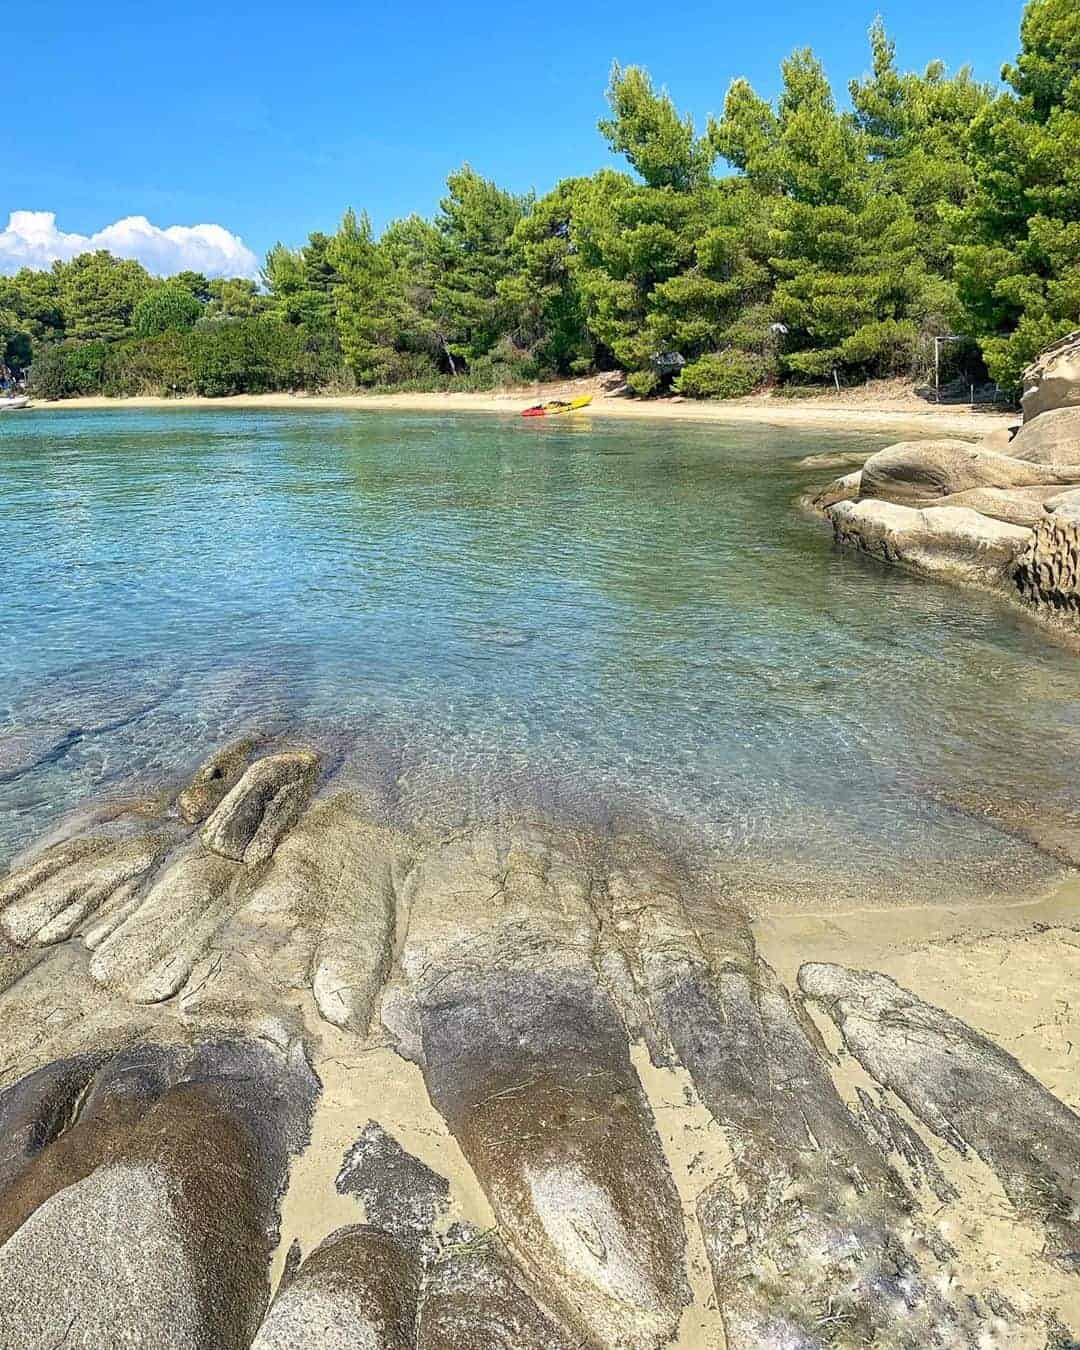 The secluded beaches of Diaporos Island